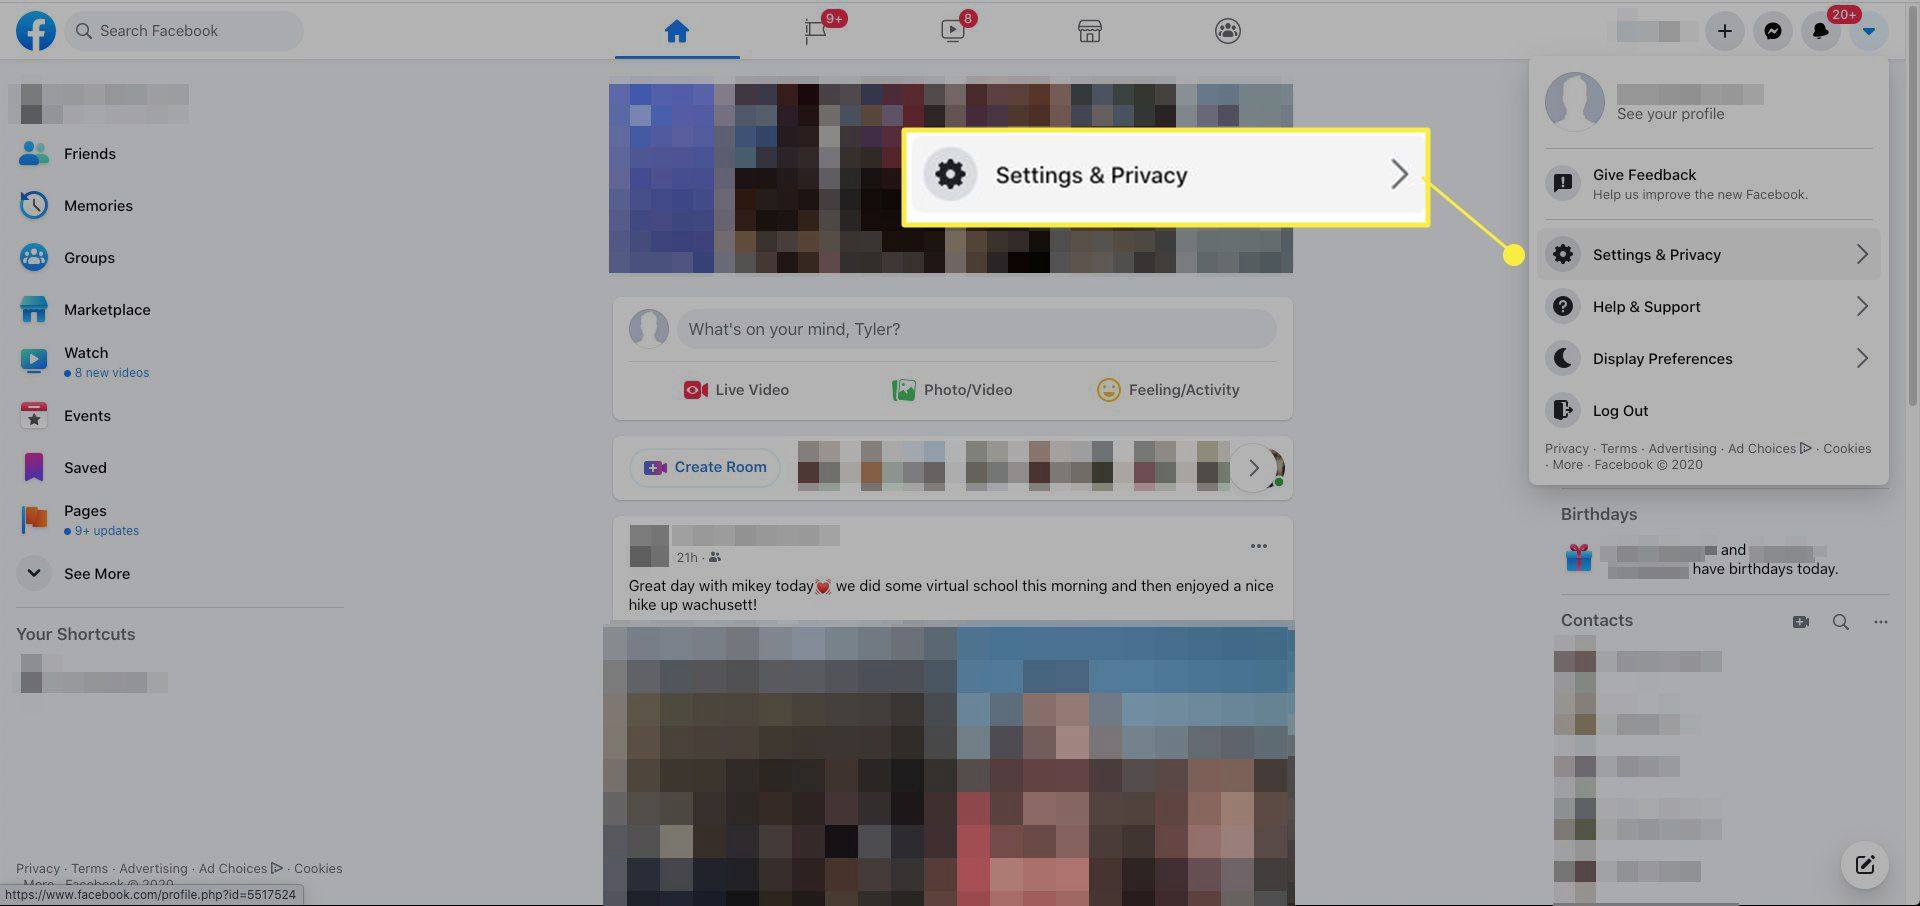 Settings and Privacy highlighted in Facebook profile